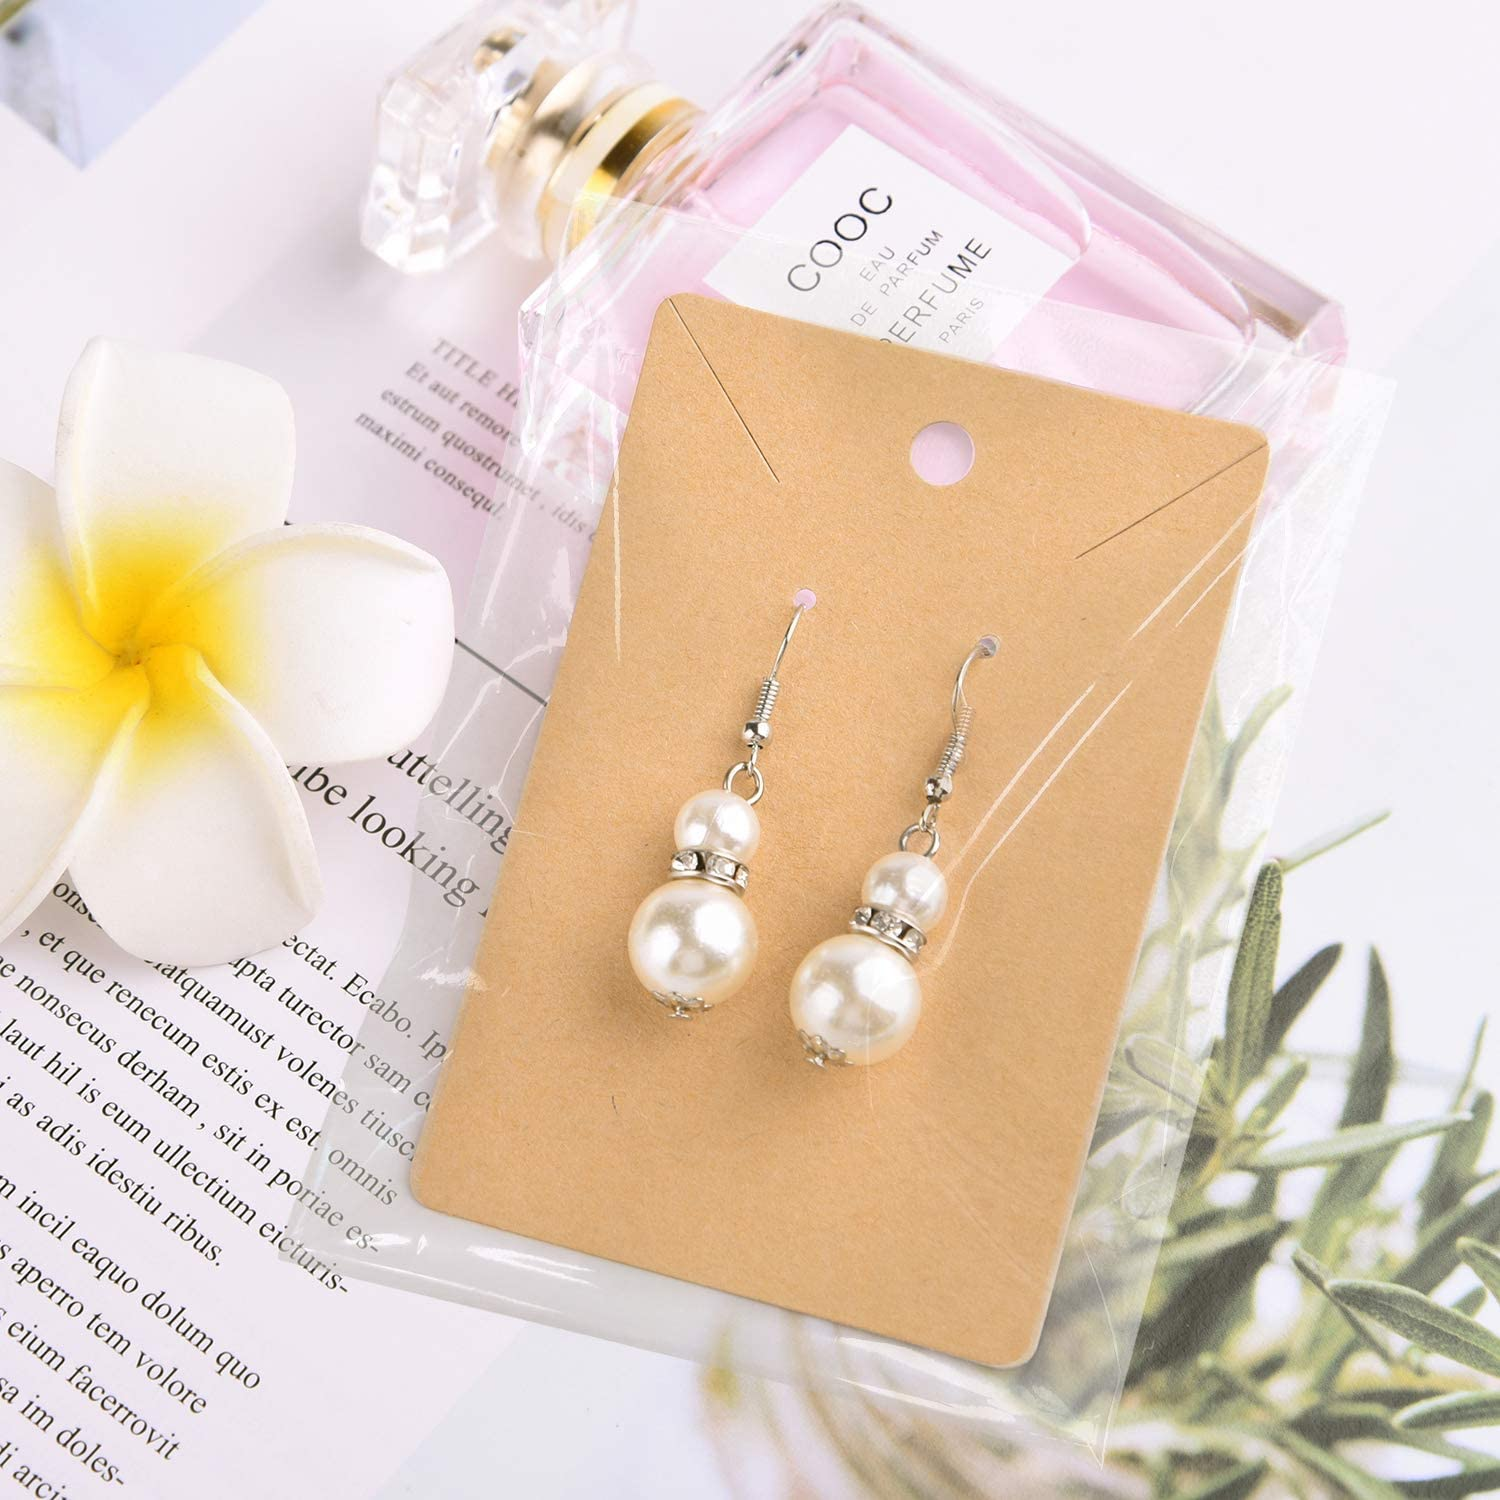 Wholesale refill 12 pack Replay earrings One dozen refill for display stand vinyl earrings for display kit You choose wholesale designs